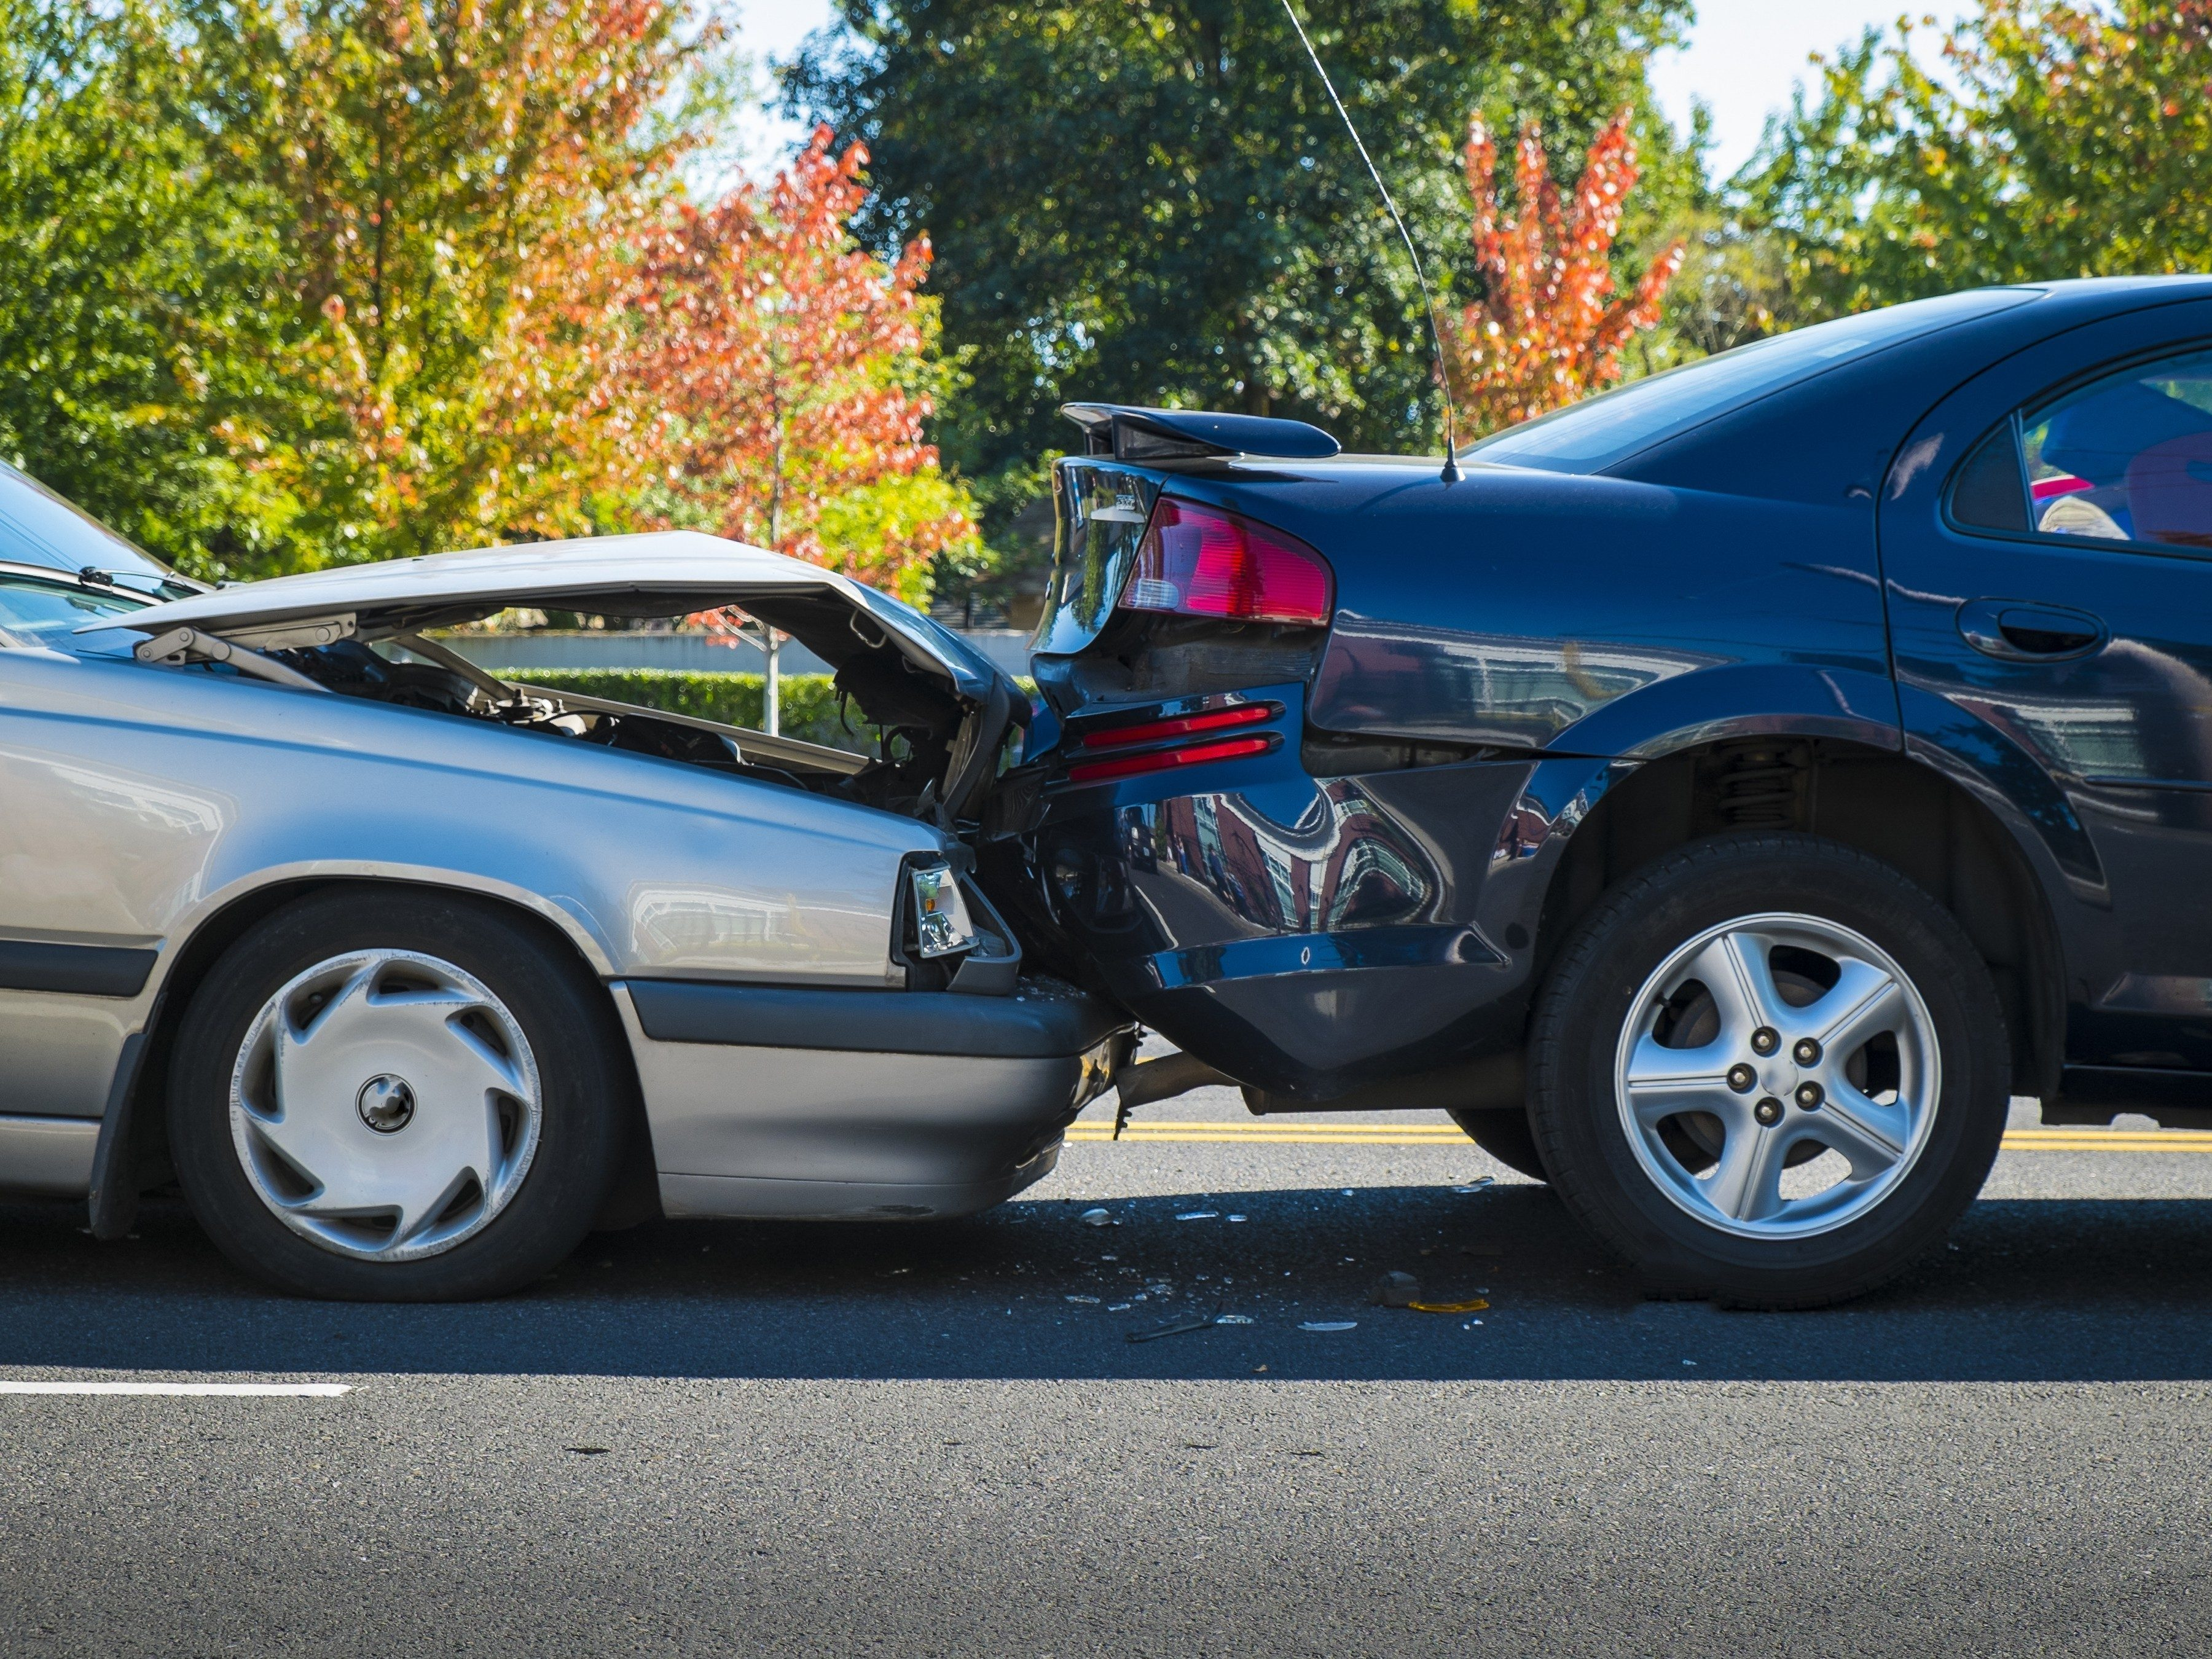 5. Consider Dropping Collision Coverage